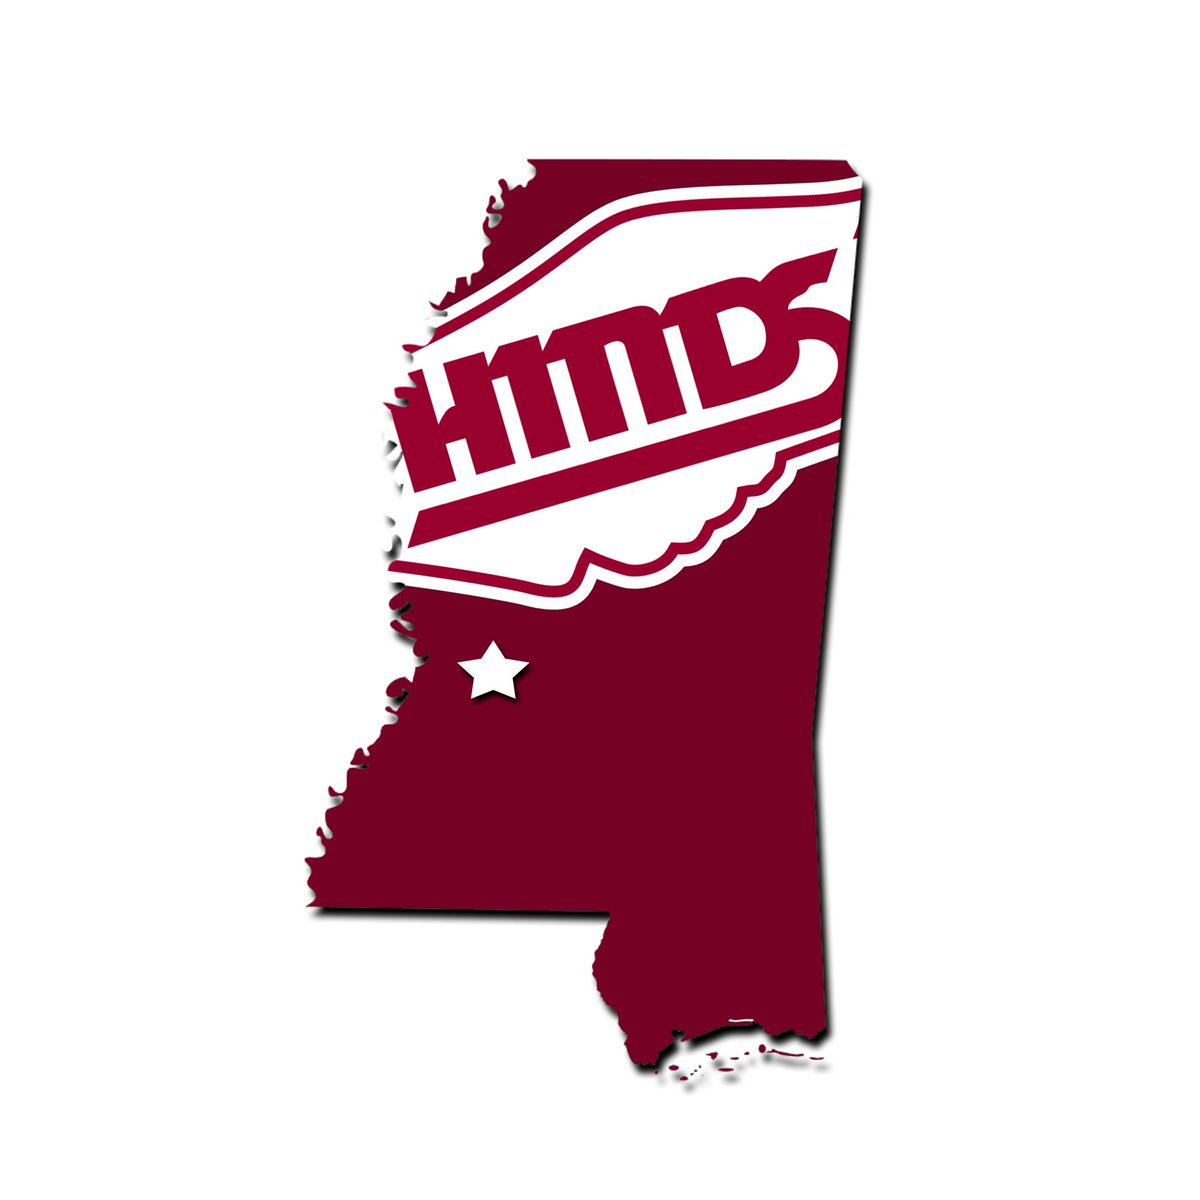 We have the best track &amp; field student athletes at Hinds CC. Come join The Process. #TrustTheProcess #TrustThePlan <br>http://pic.twitter.com/1oRLqbclgb